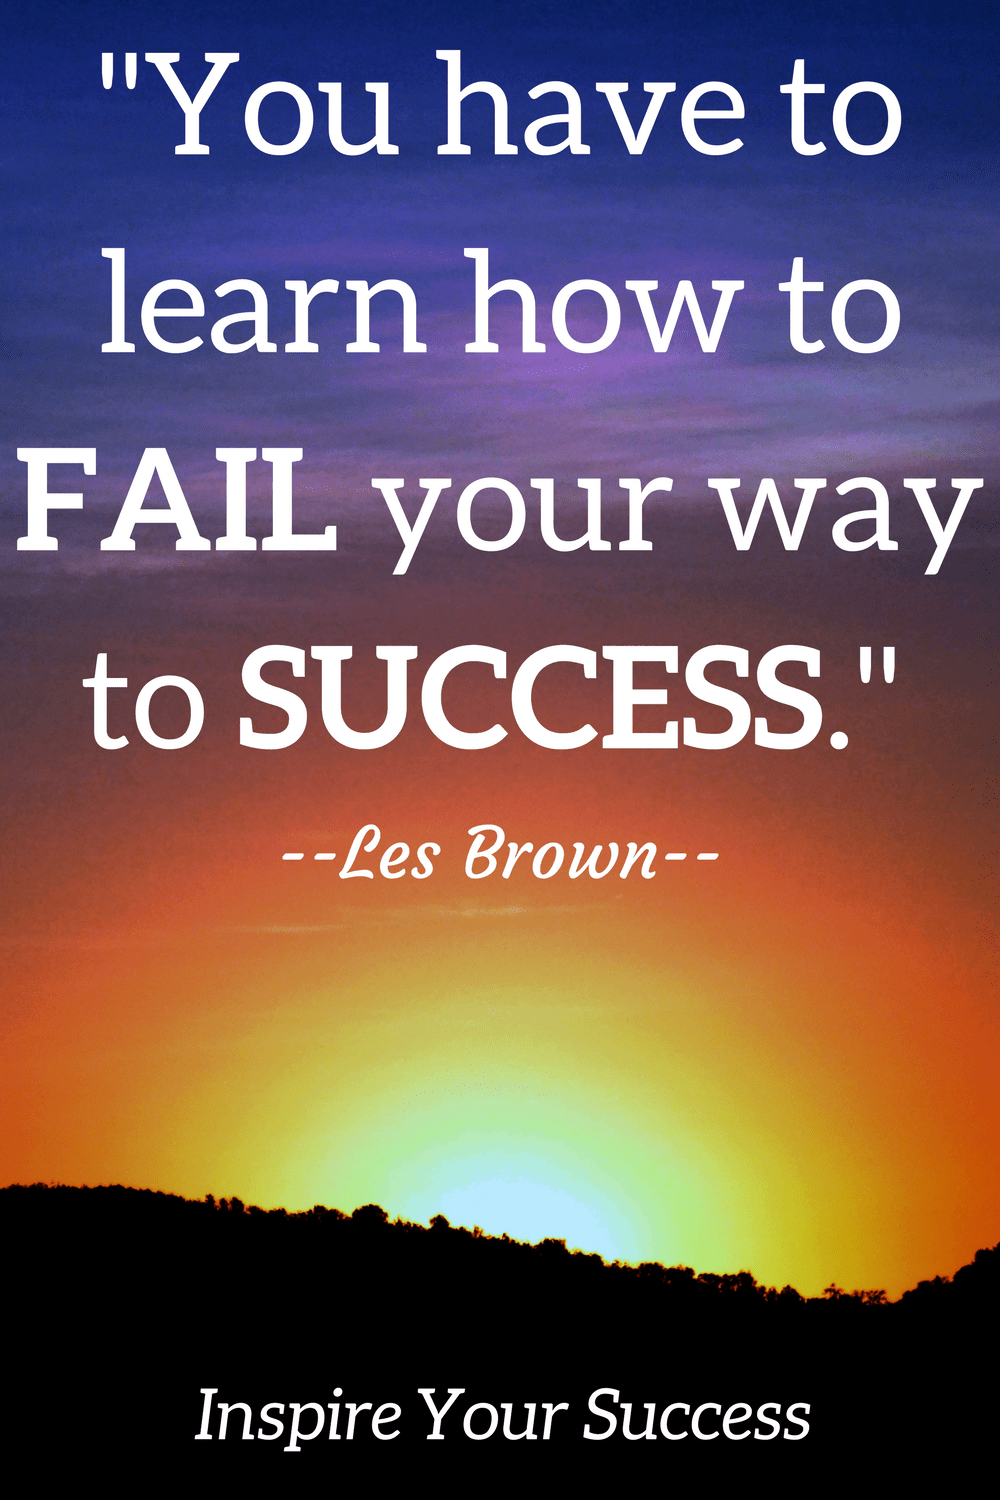 Les Brown Quotes 52 Inspiring Les Brown Quotes To Destroy Fear & Live Your Dreams